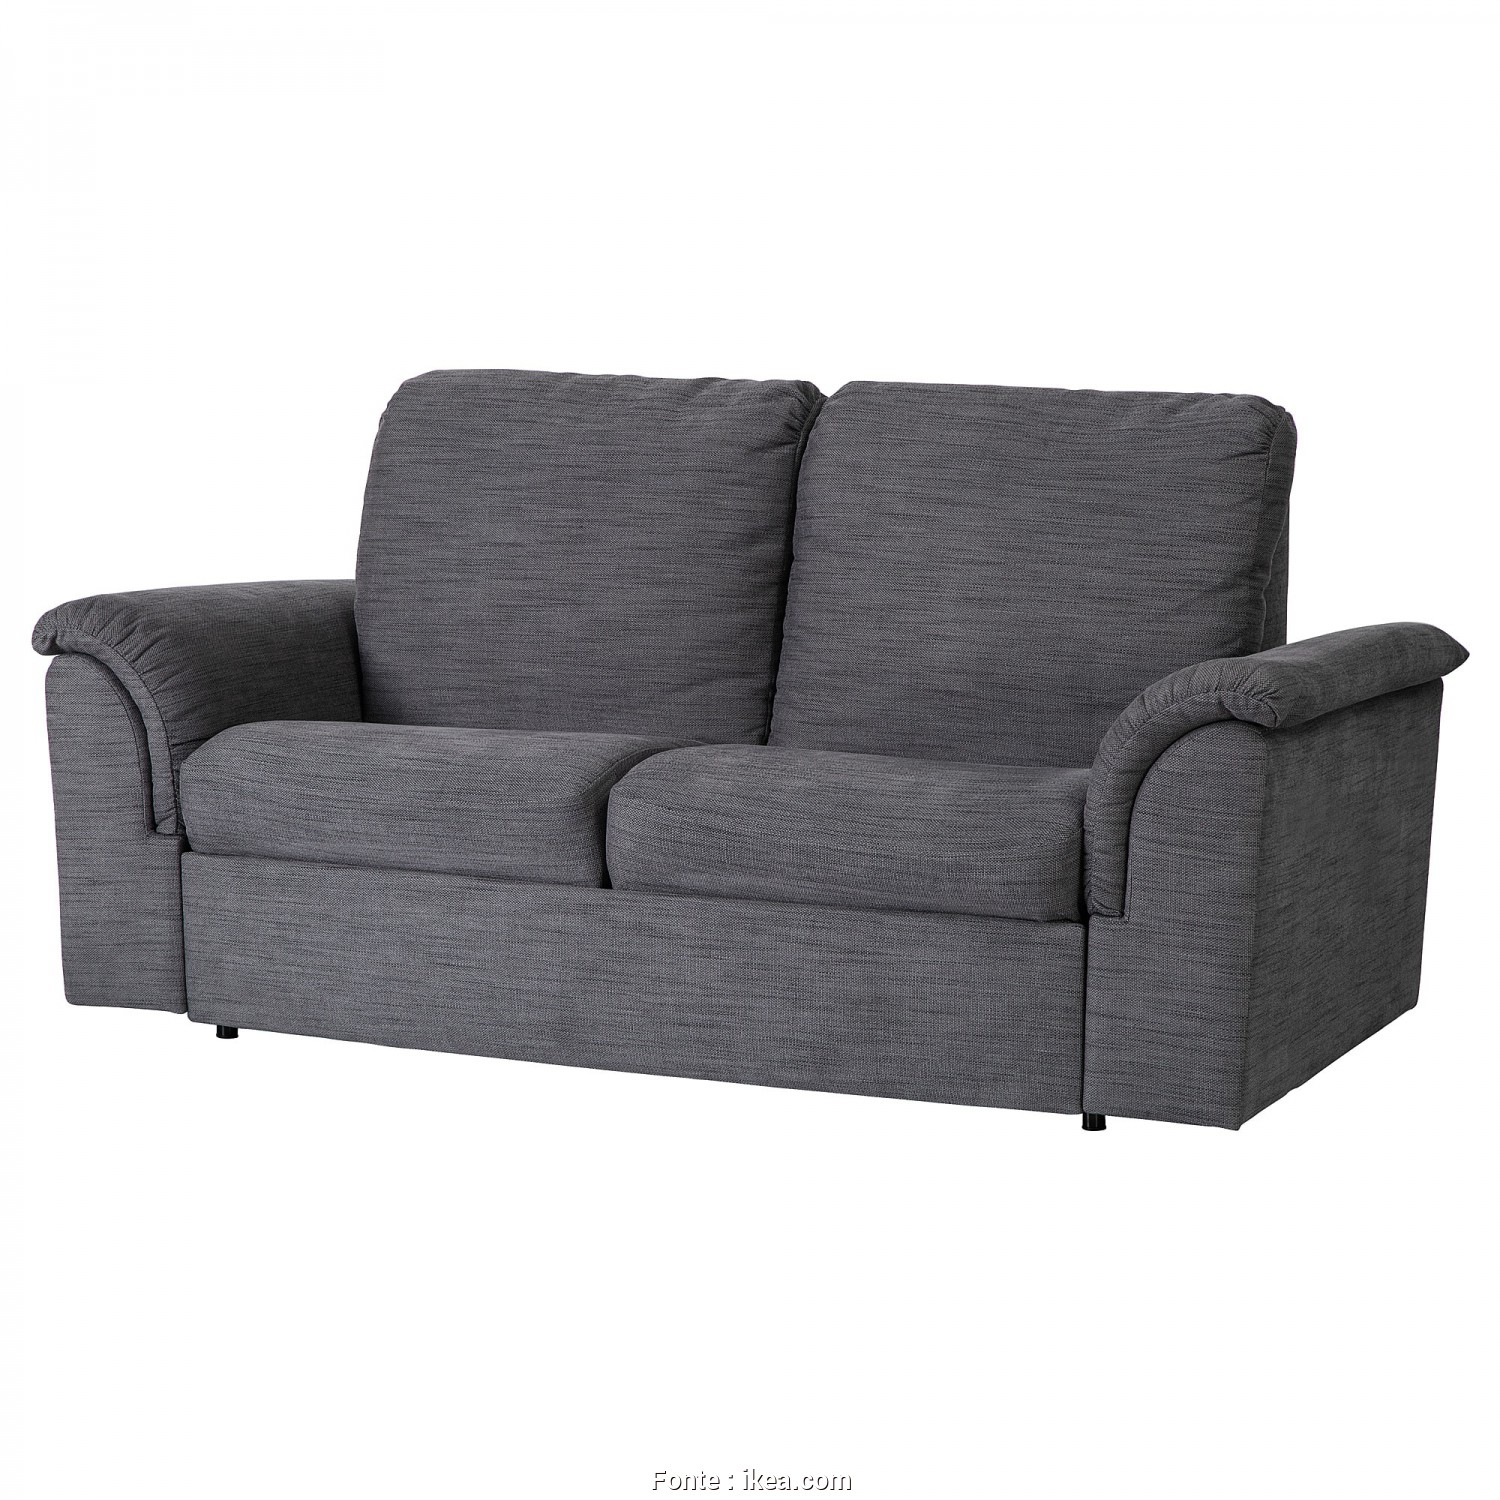 Ikea Backabro 2, Locale IKEA VÄSTBY 2-Seat Sofa-Bed Readily Converts Into A Bed